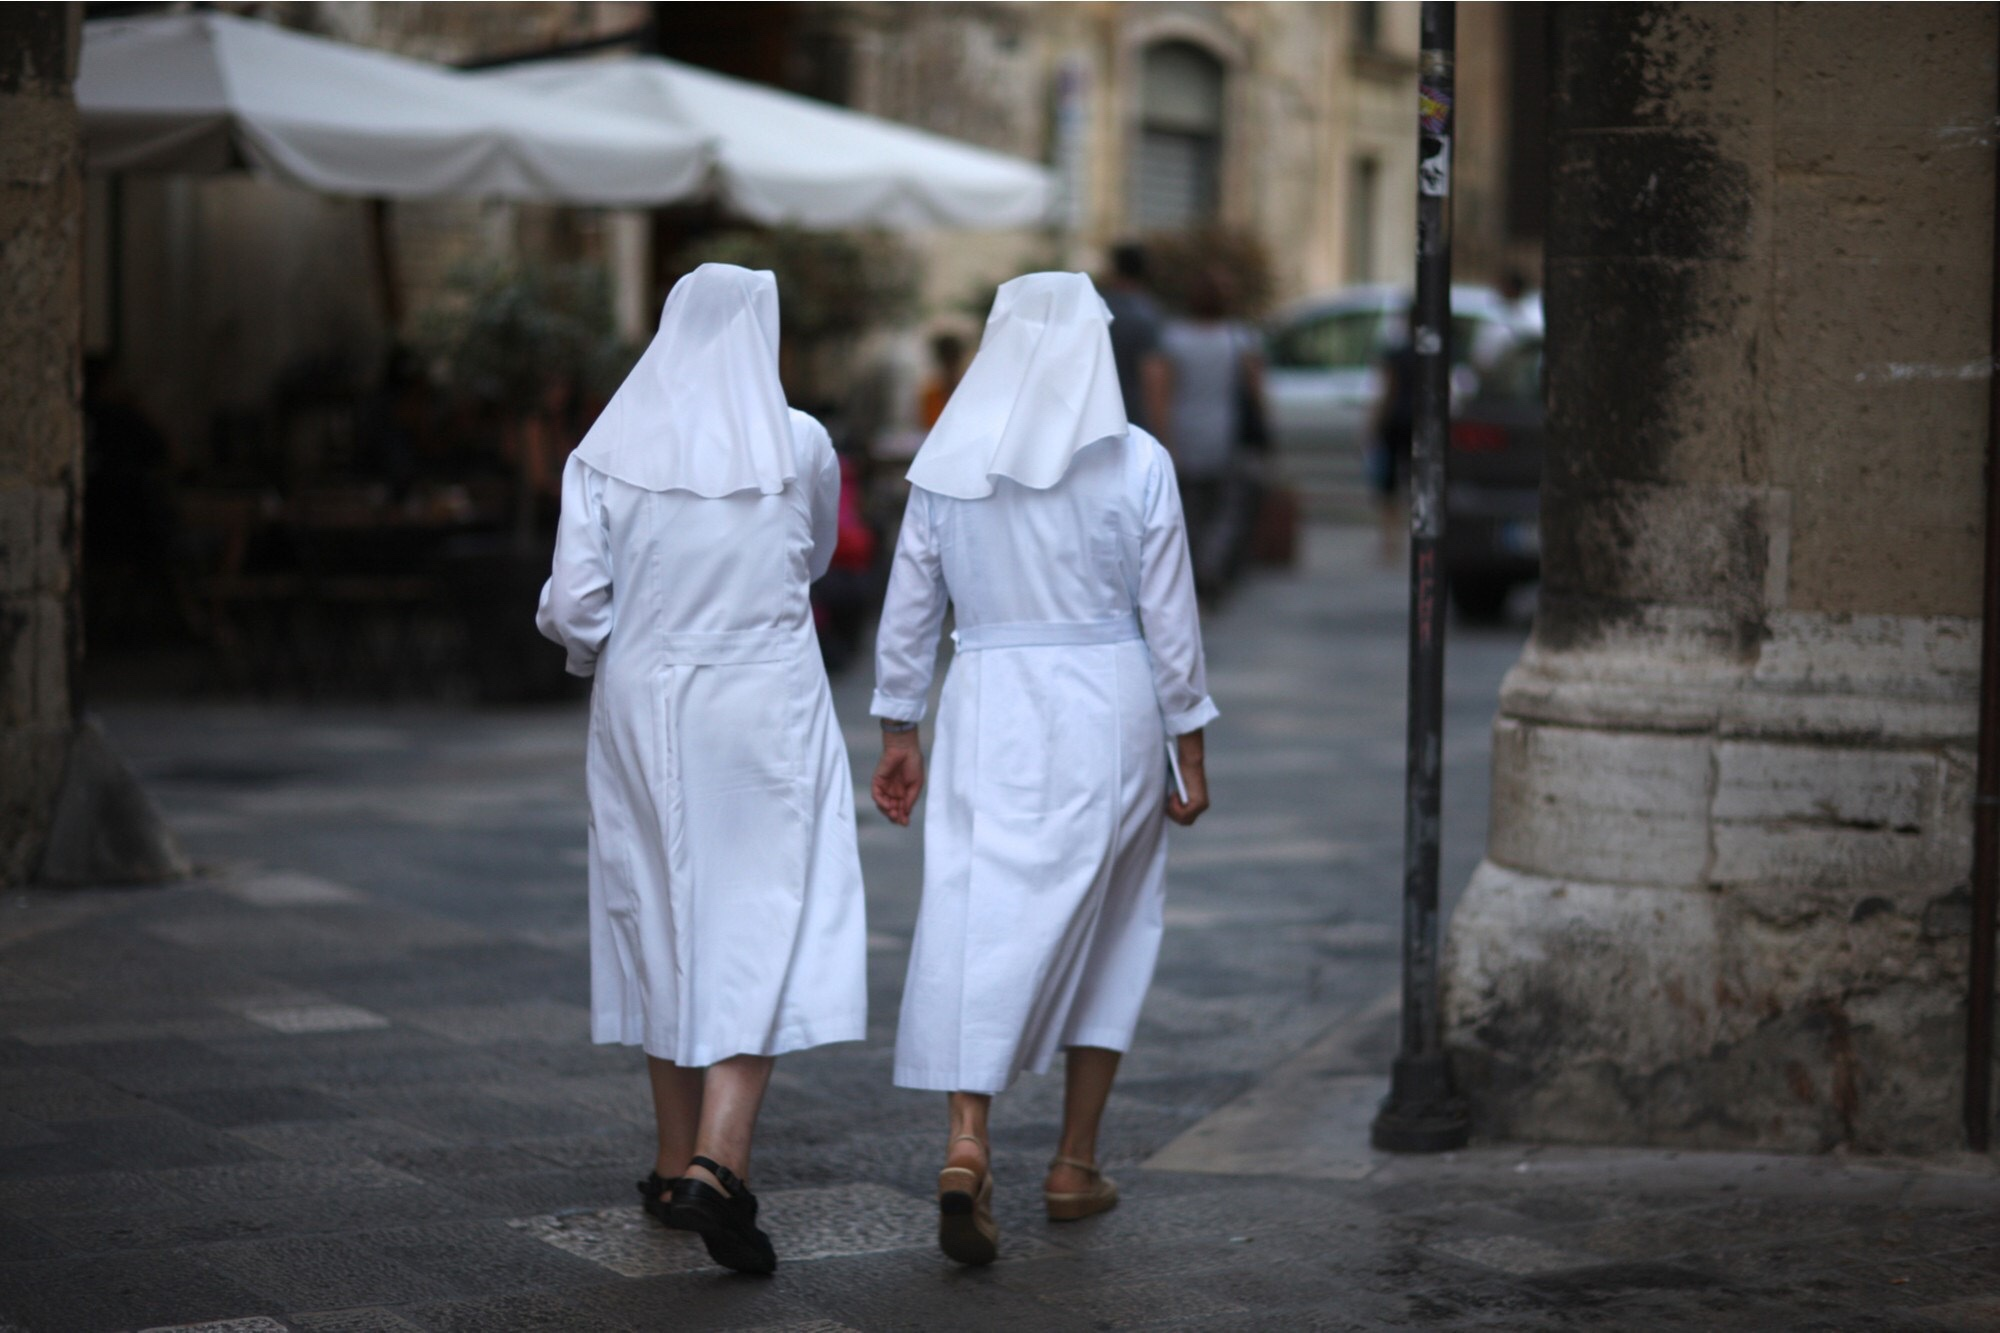 Catholic Church investigating two nuns who returned pregnant after missionary trip to Africa